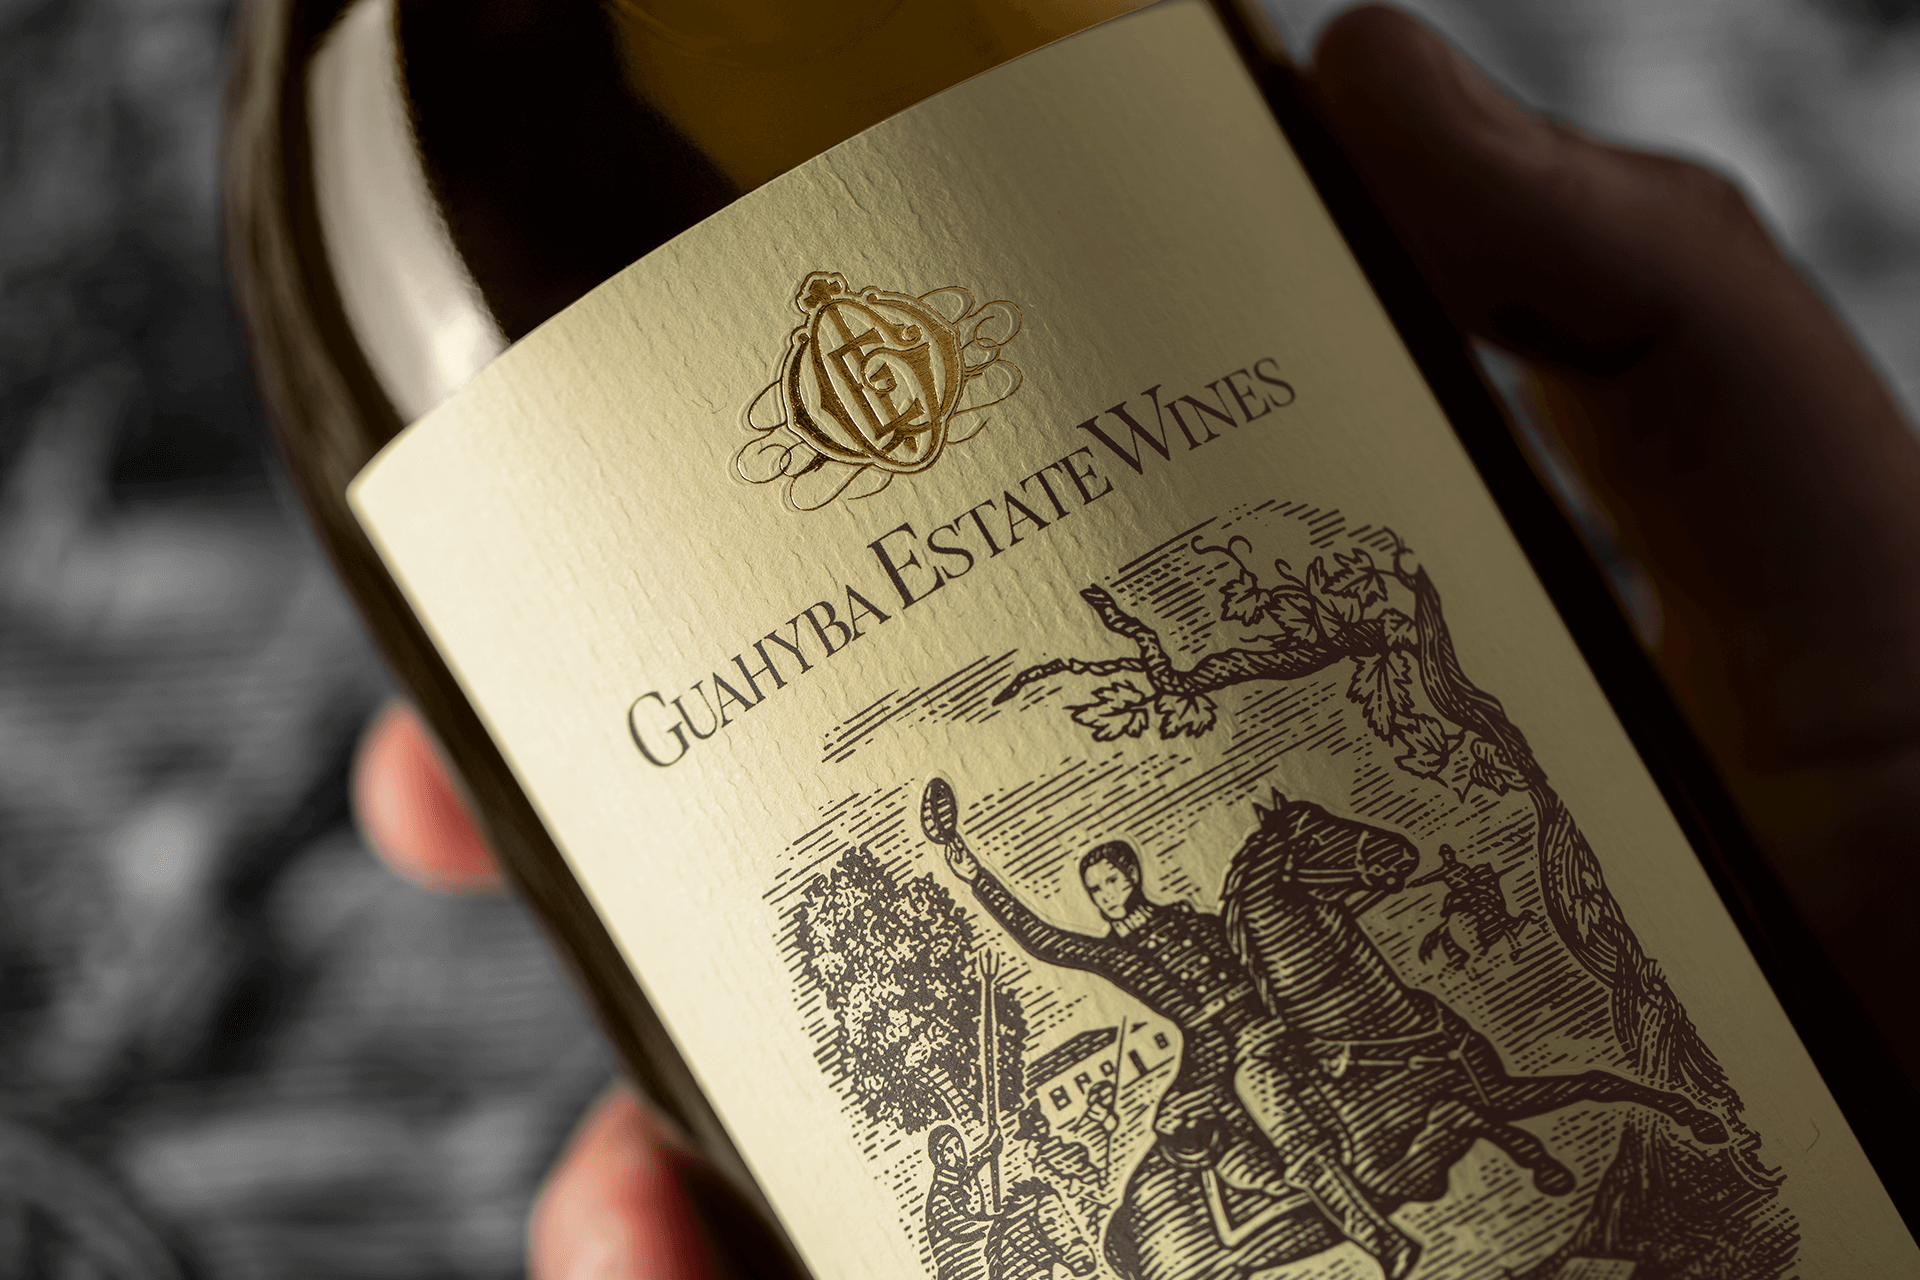 Branding and Packaging Design for Guahyba Estate Wines Designed by HolyStudio